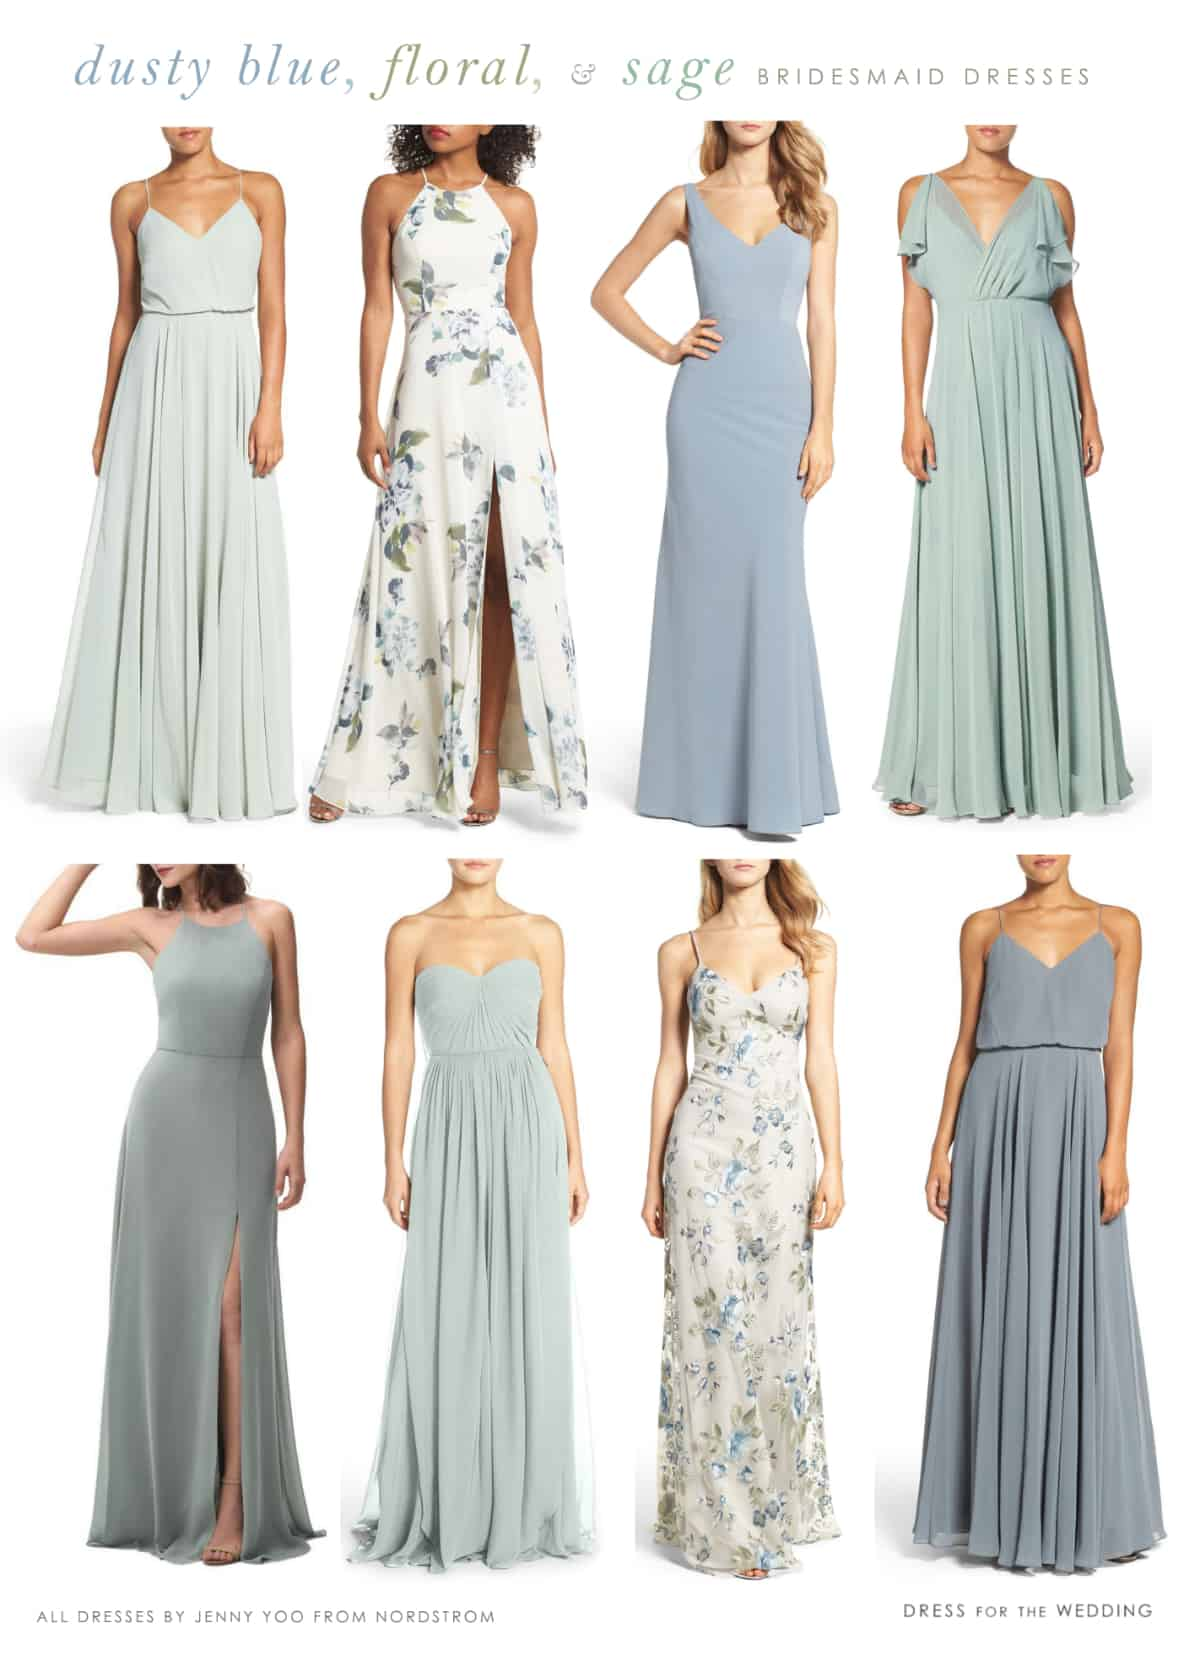 Blue floral and mist sage green mismatched bridesmaid dresses by Jenny Yoo